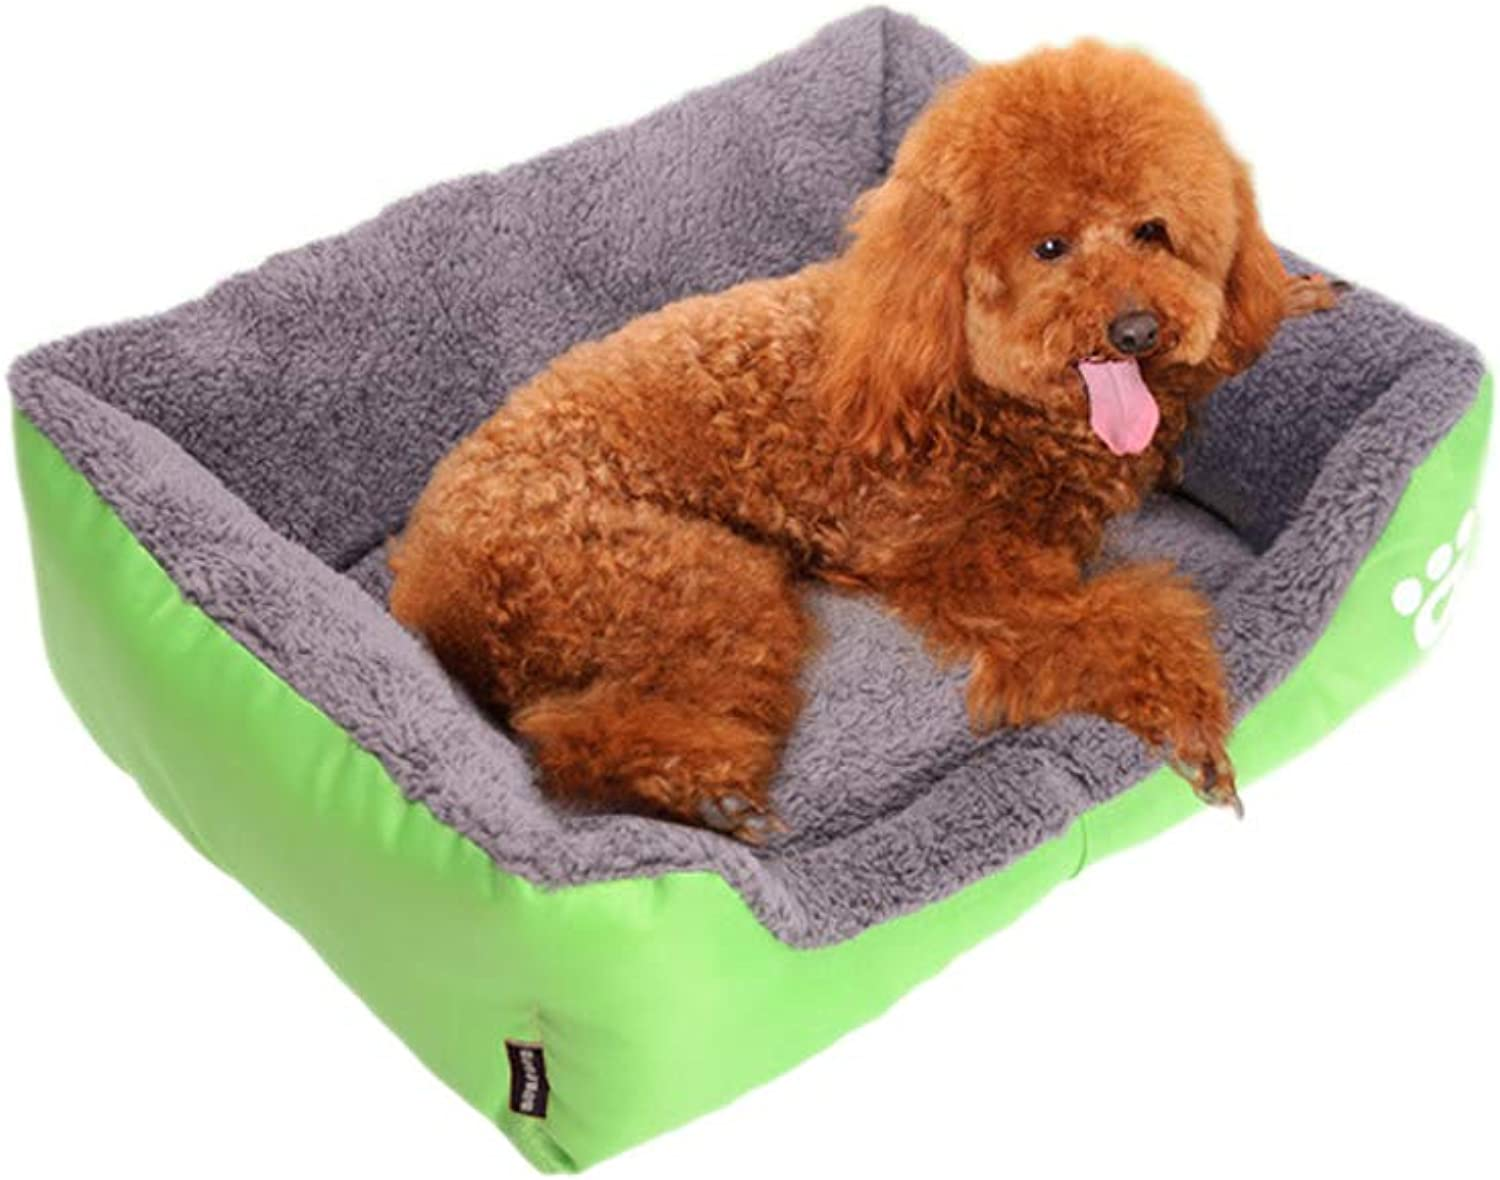 Dog Kennel Pet House Fall Winter Warm Pet Waterloo Teddy golden Retriever Dogs Bed Cushion Pussy Litter Pet Supplies Teddy Sofa Pet Bed Pet Waterloo (color   Green, Size   L)